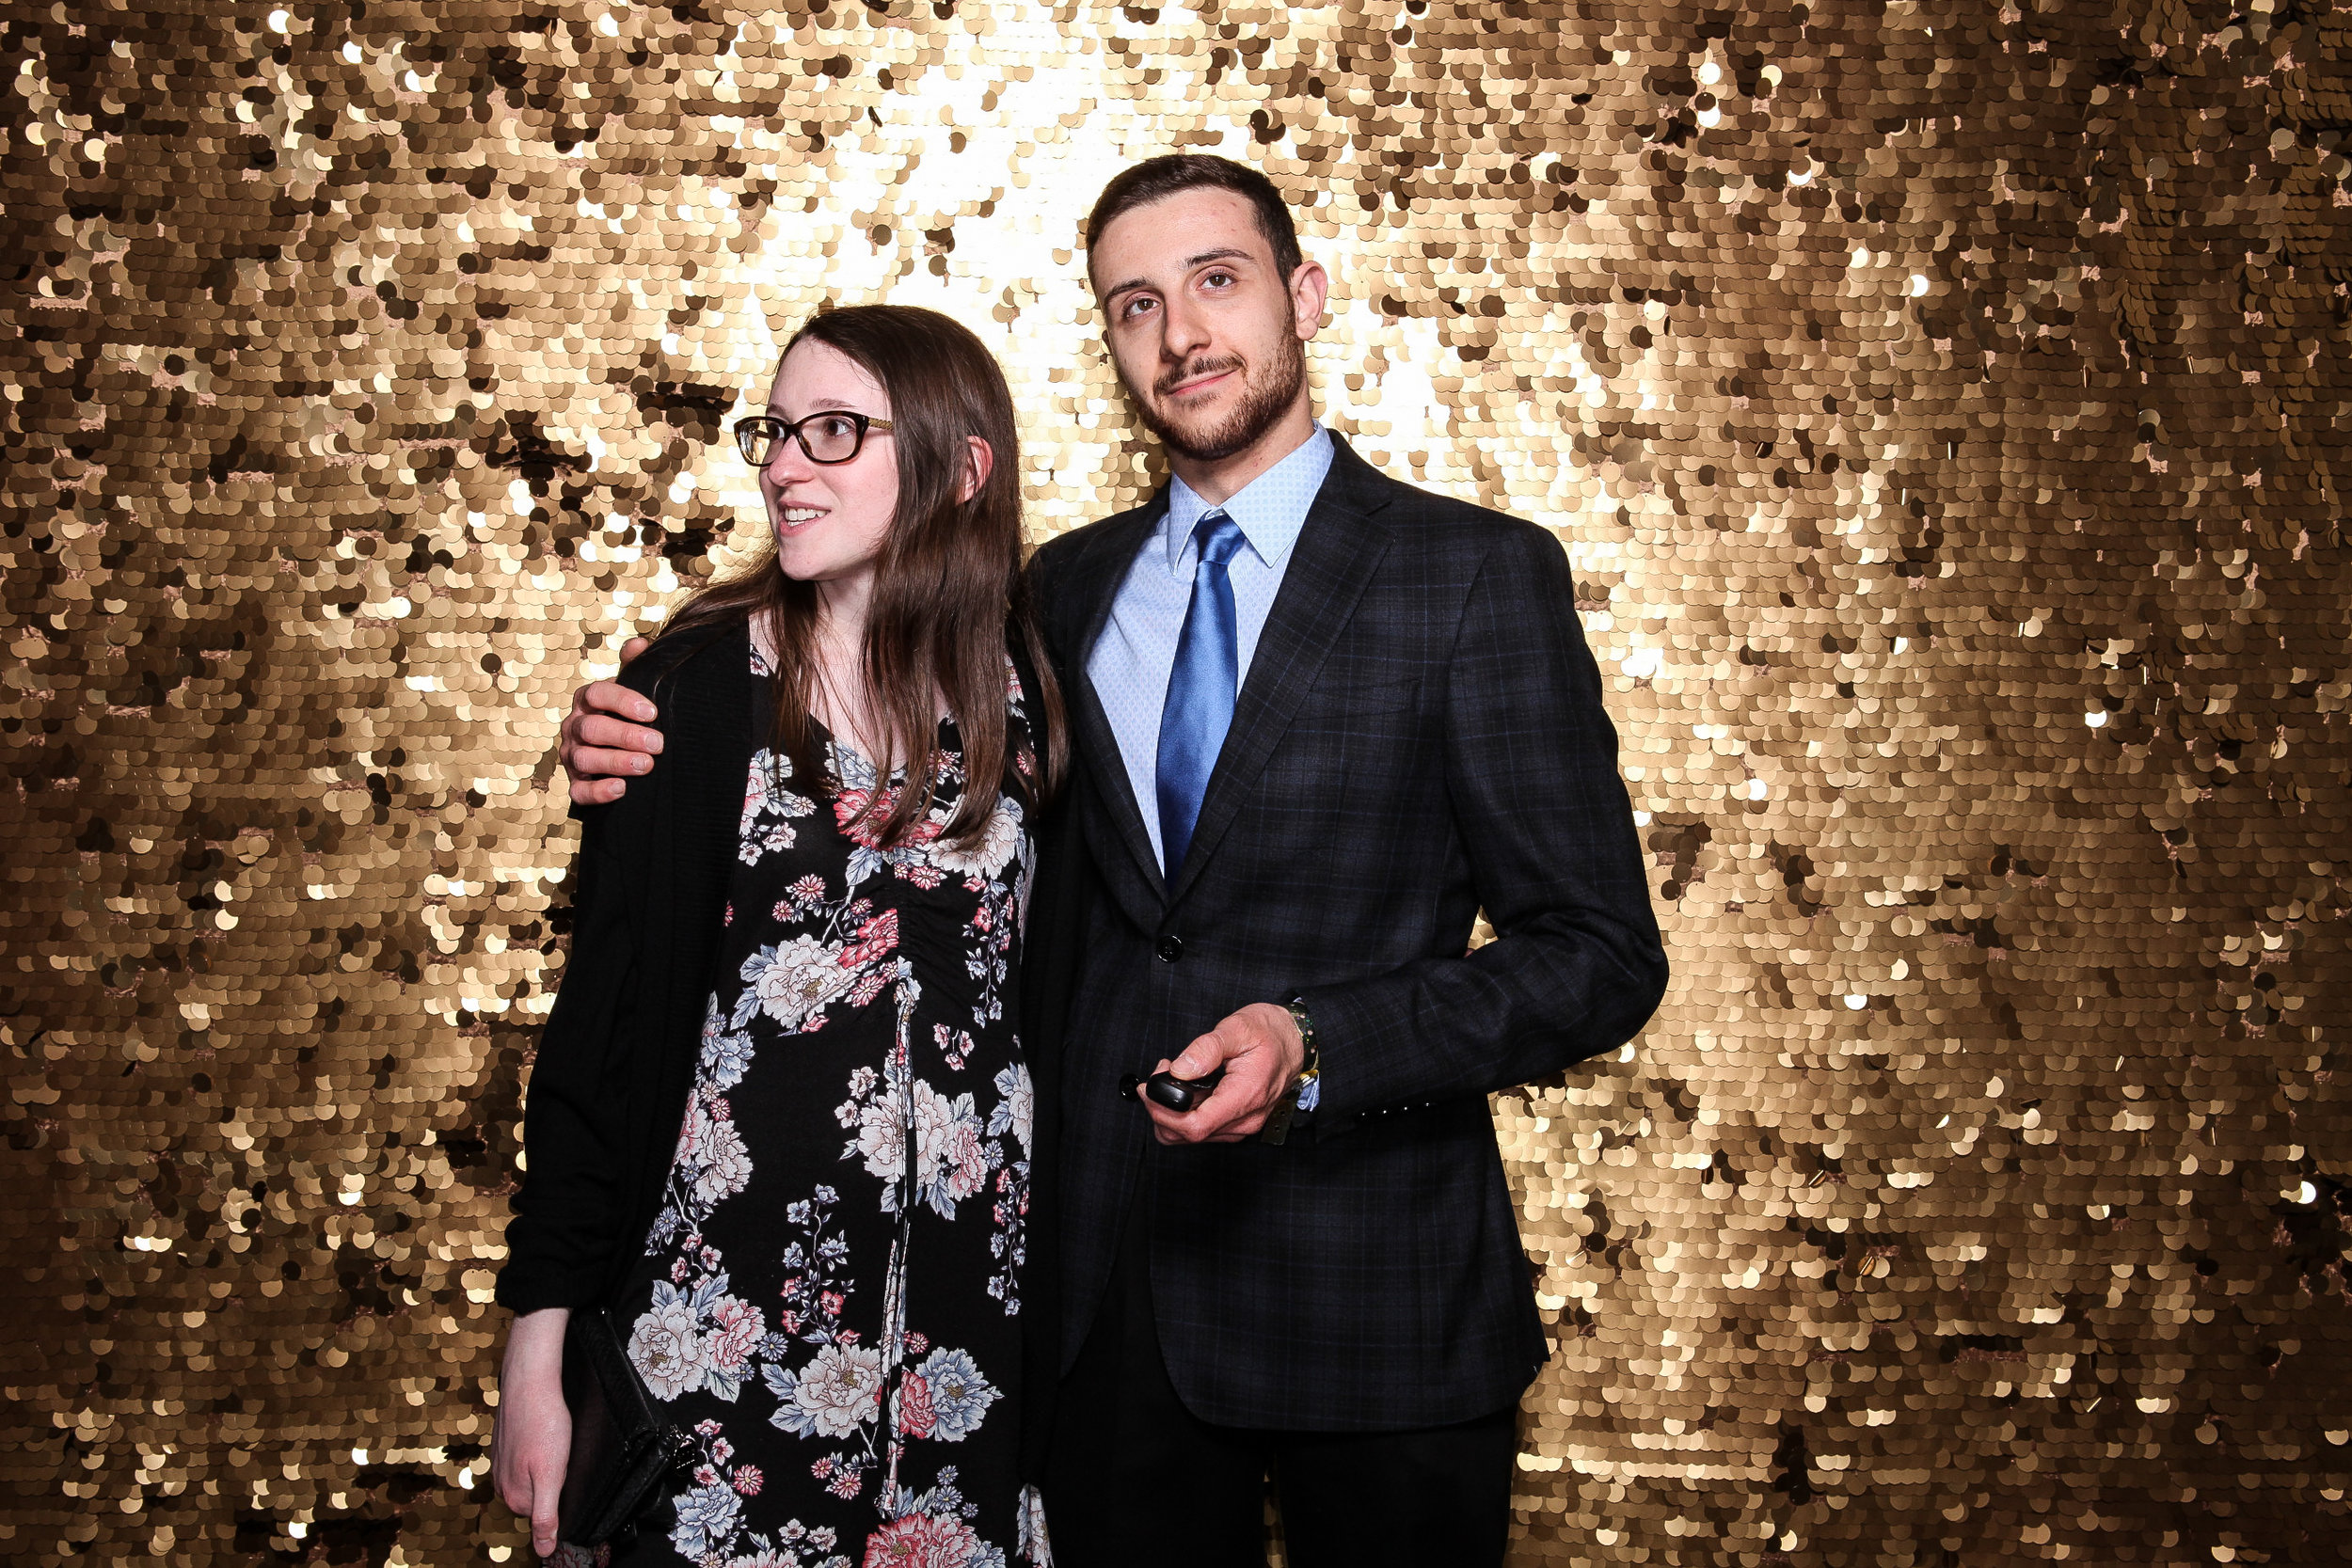 20190503_Adelphi_Senior_Formal-204.jpg